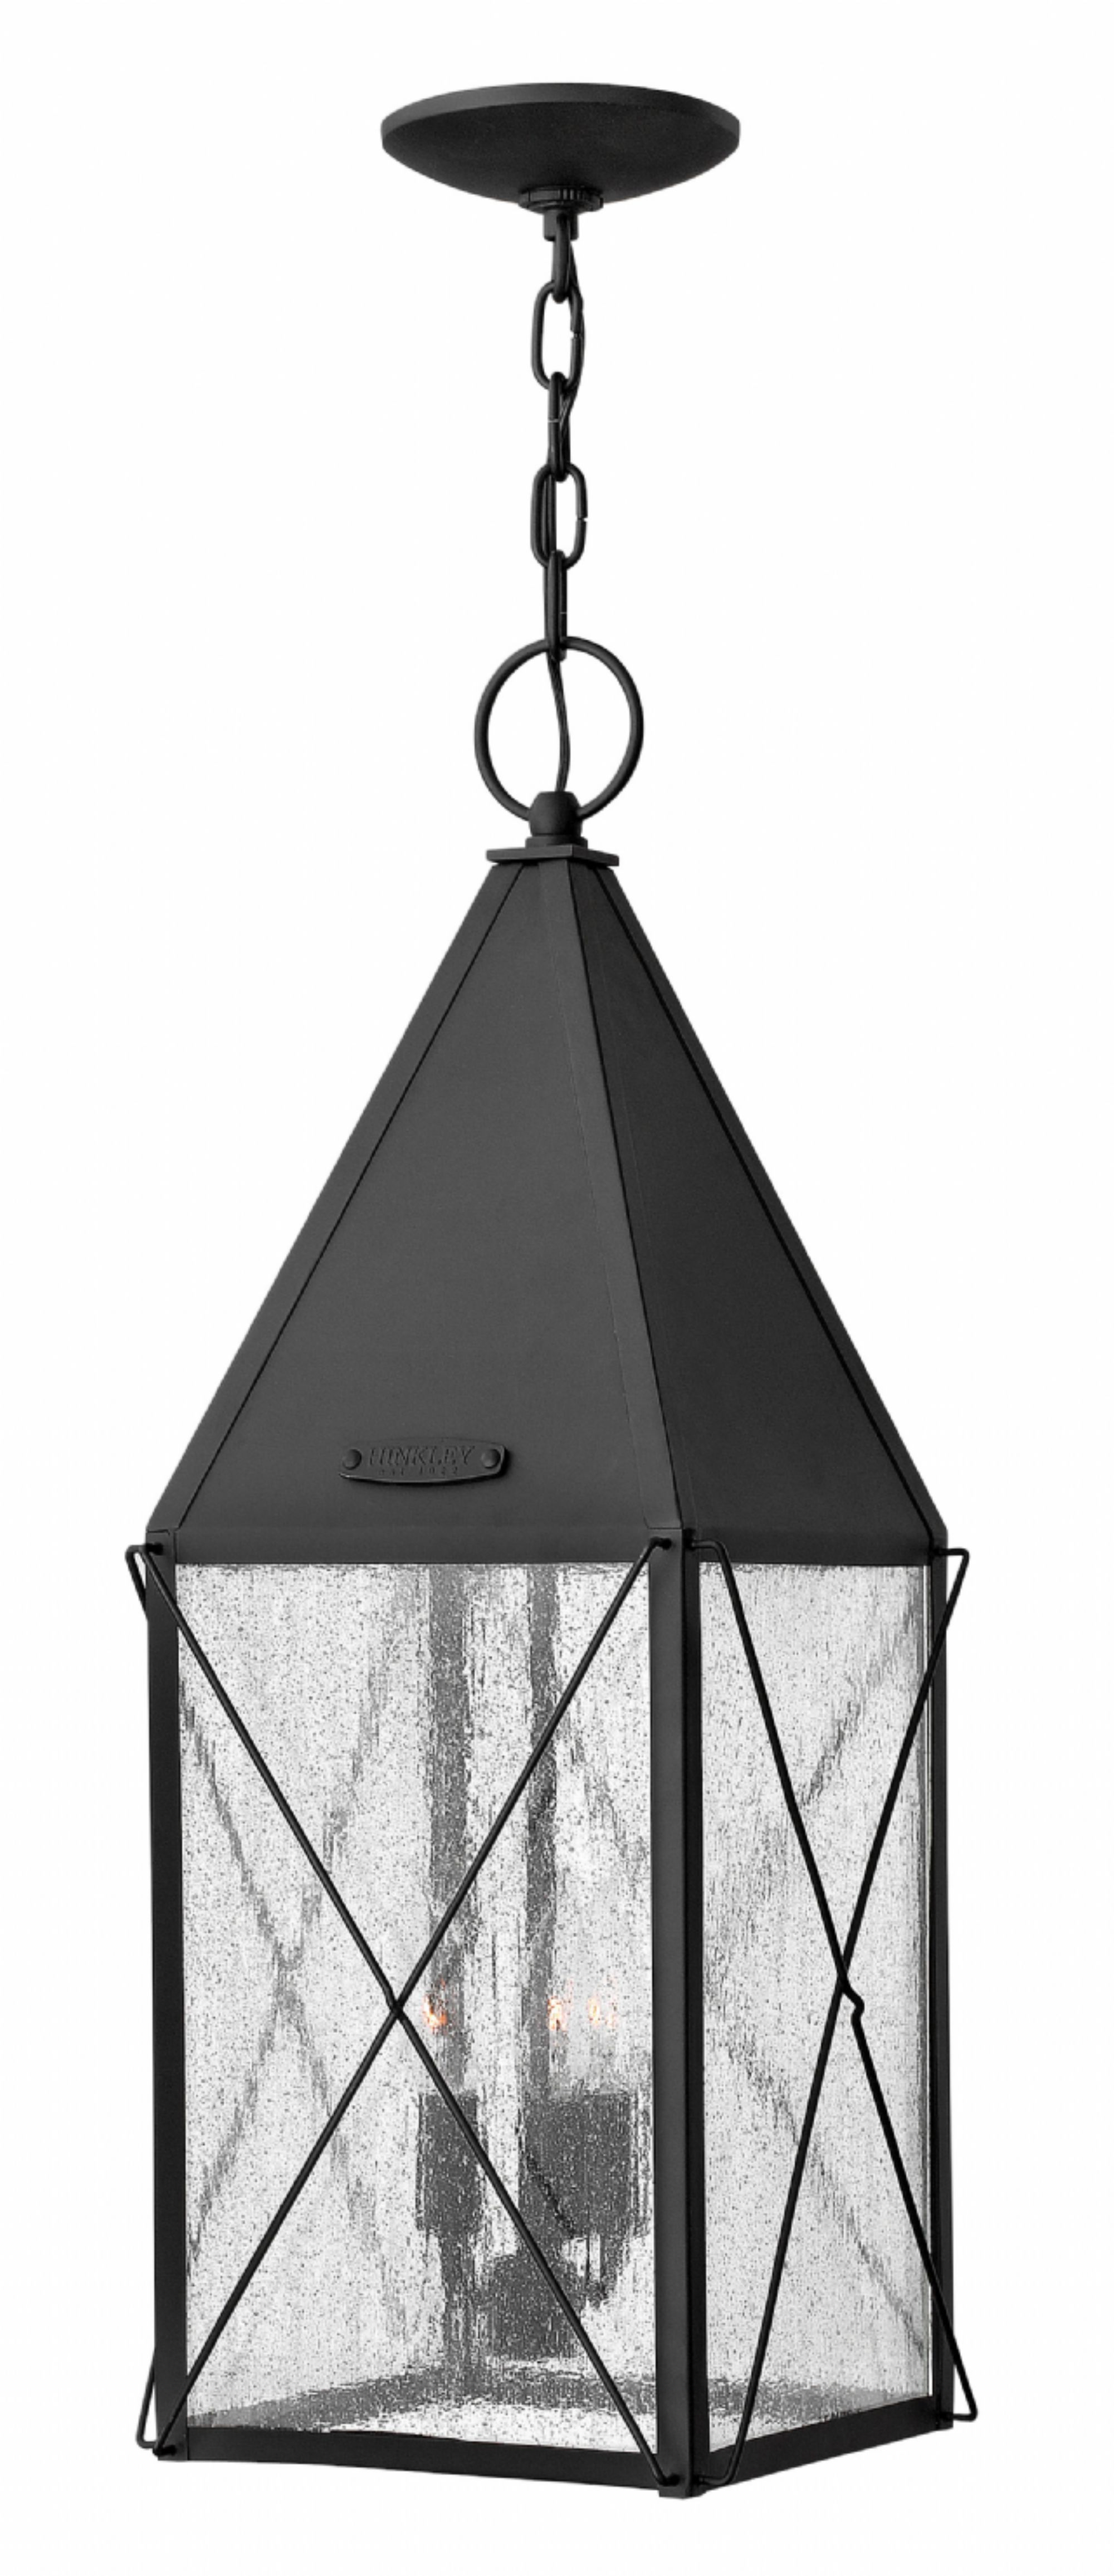 Hinkley lighting carries many black york exterior ceiling mount light fixtures that can be used to enhance the appearance and lighting of any home